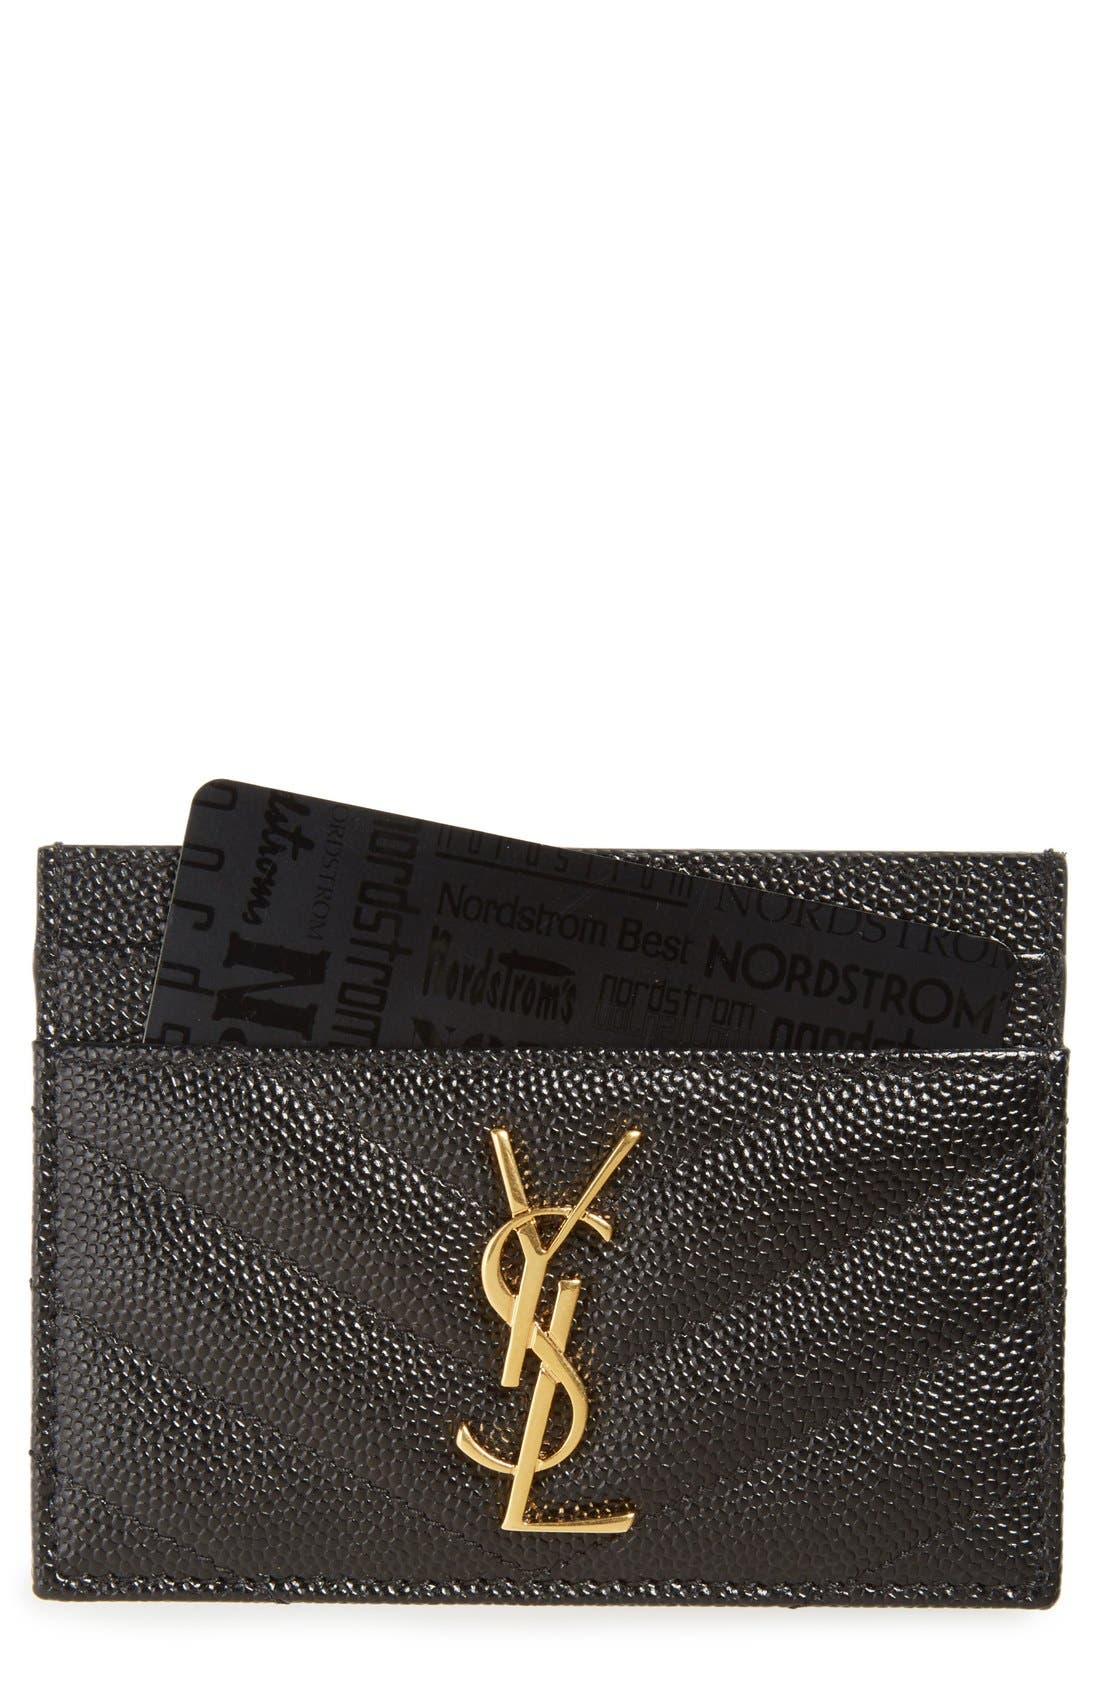 Monogram Quilted Leather Credit Card Case,                         Main,                         color, Nero